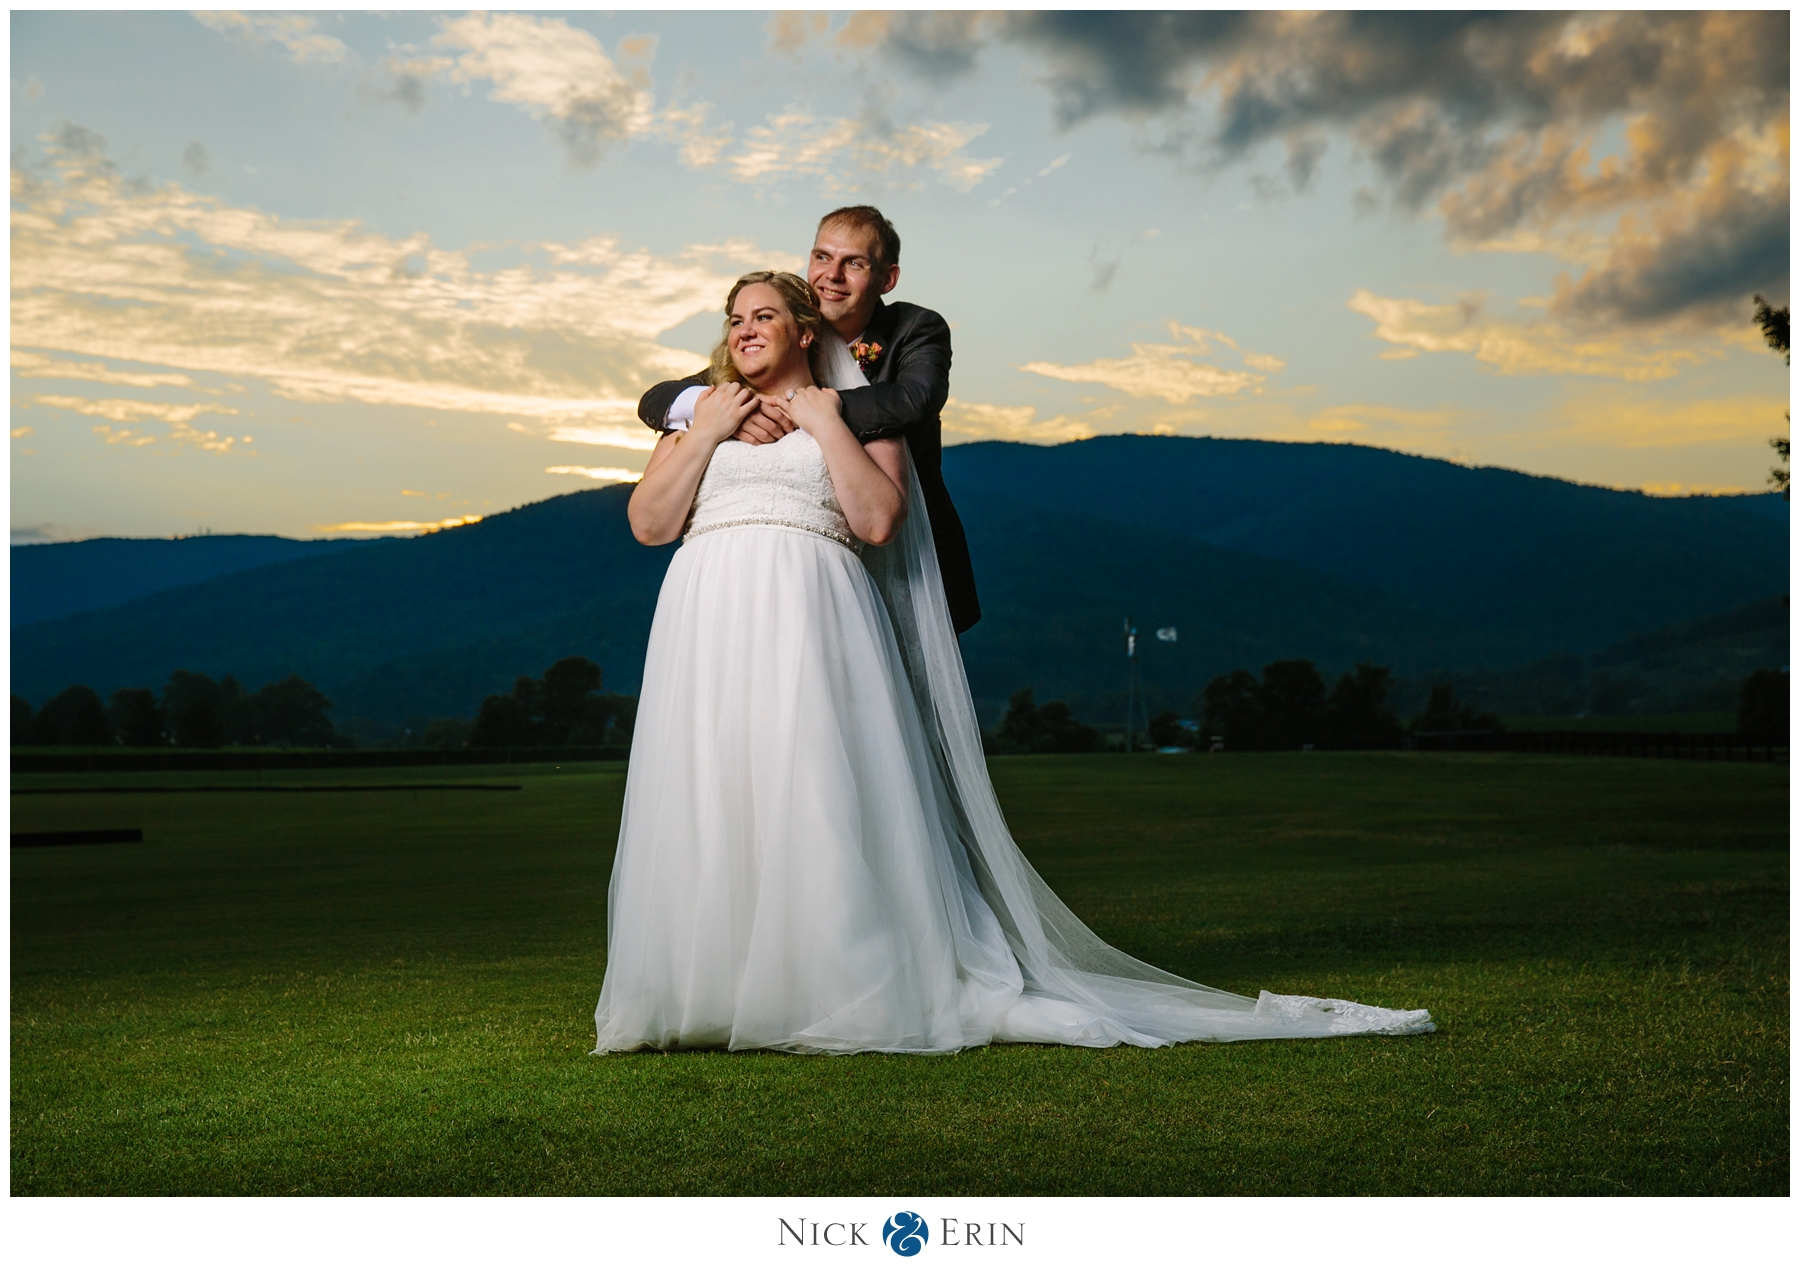 Donner_Photography_Charlottesville Virginia Wedding_Jennifer & Chris_0059